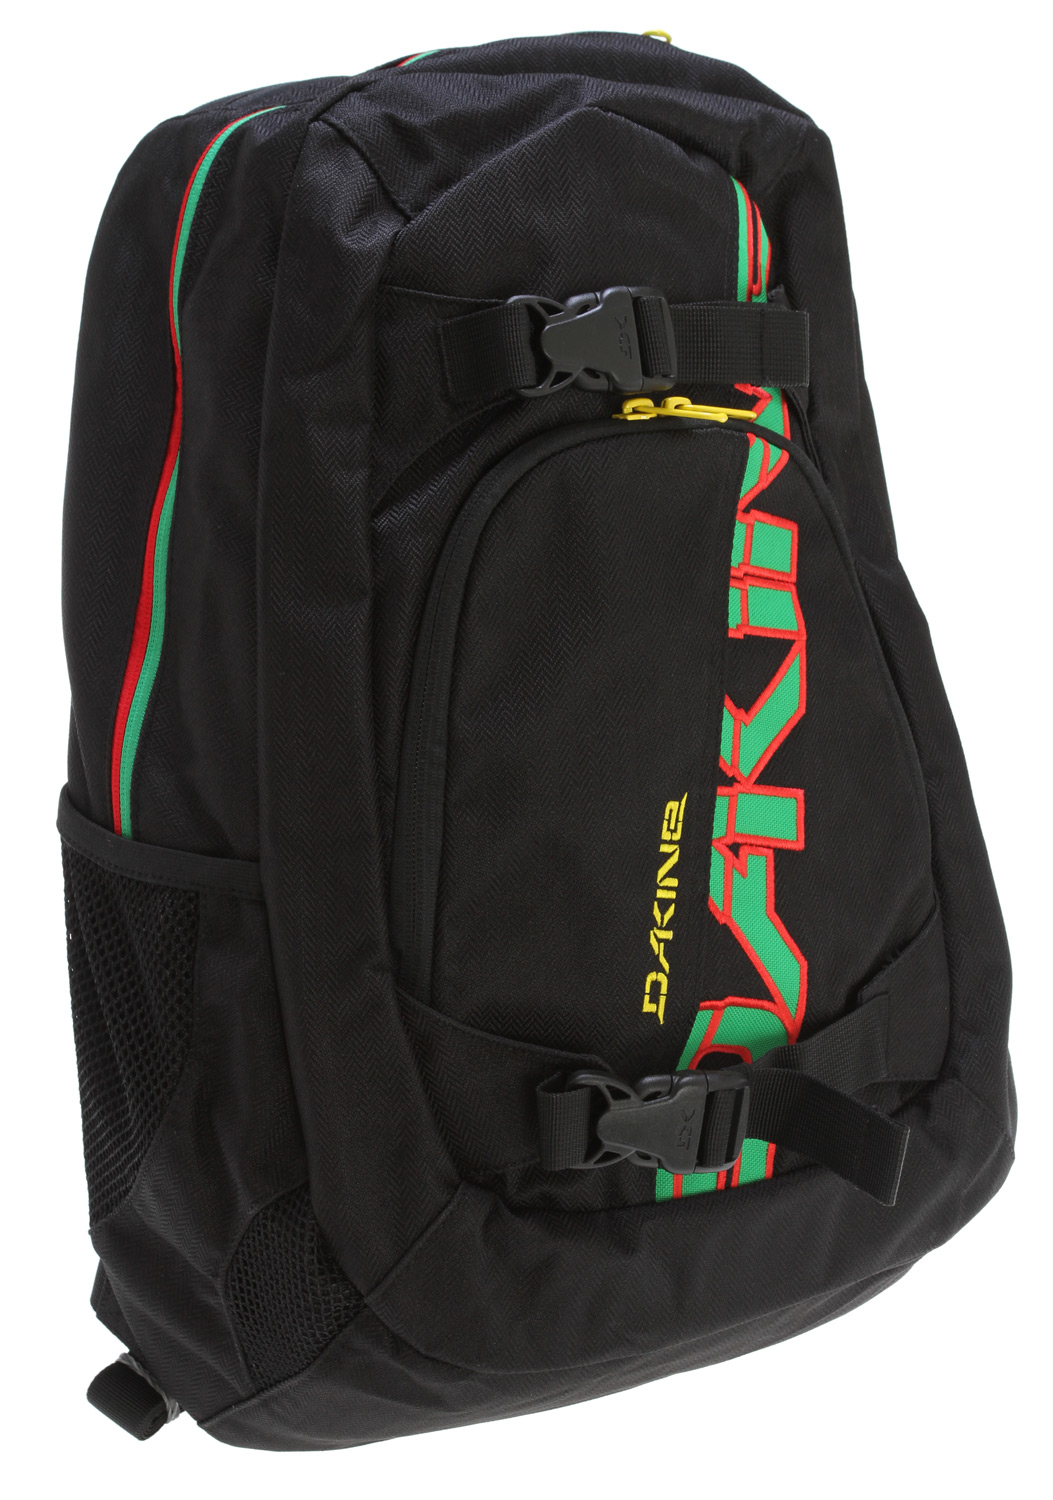 "Surf Key Features of the Dakine Explorer Backpack: Padded sleeve fits most 15"" laptops Skate carry straps MP3/fleece sunglass pockets Organizer pocket Mesh side pockets Volume: 1600 cu. in. [ 26 L ] Size: 20 x 12 x 10"" [ 50 x 30 x 25cm ] 600D Polyester - $31.96"